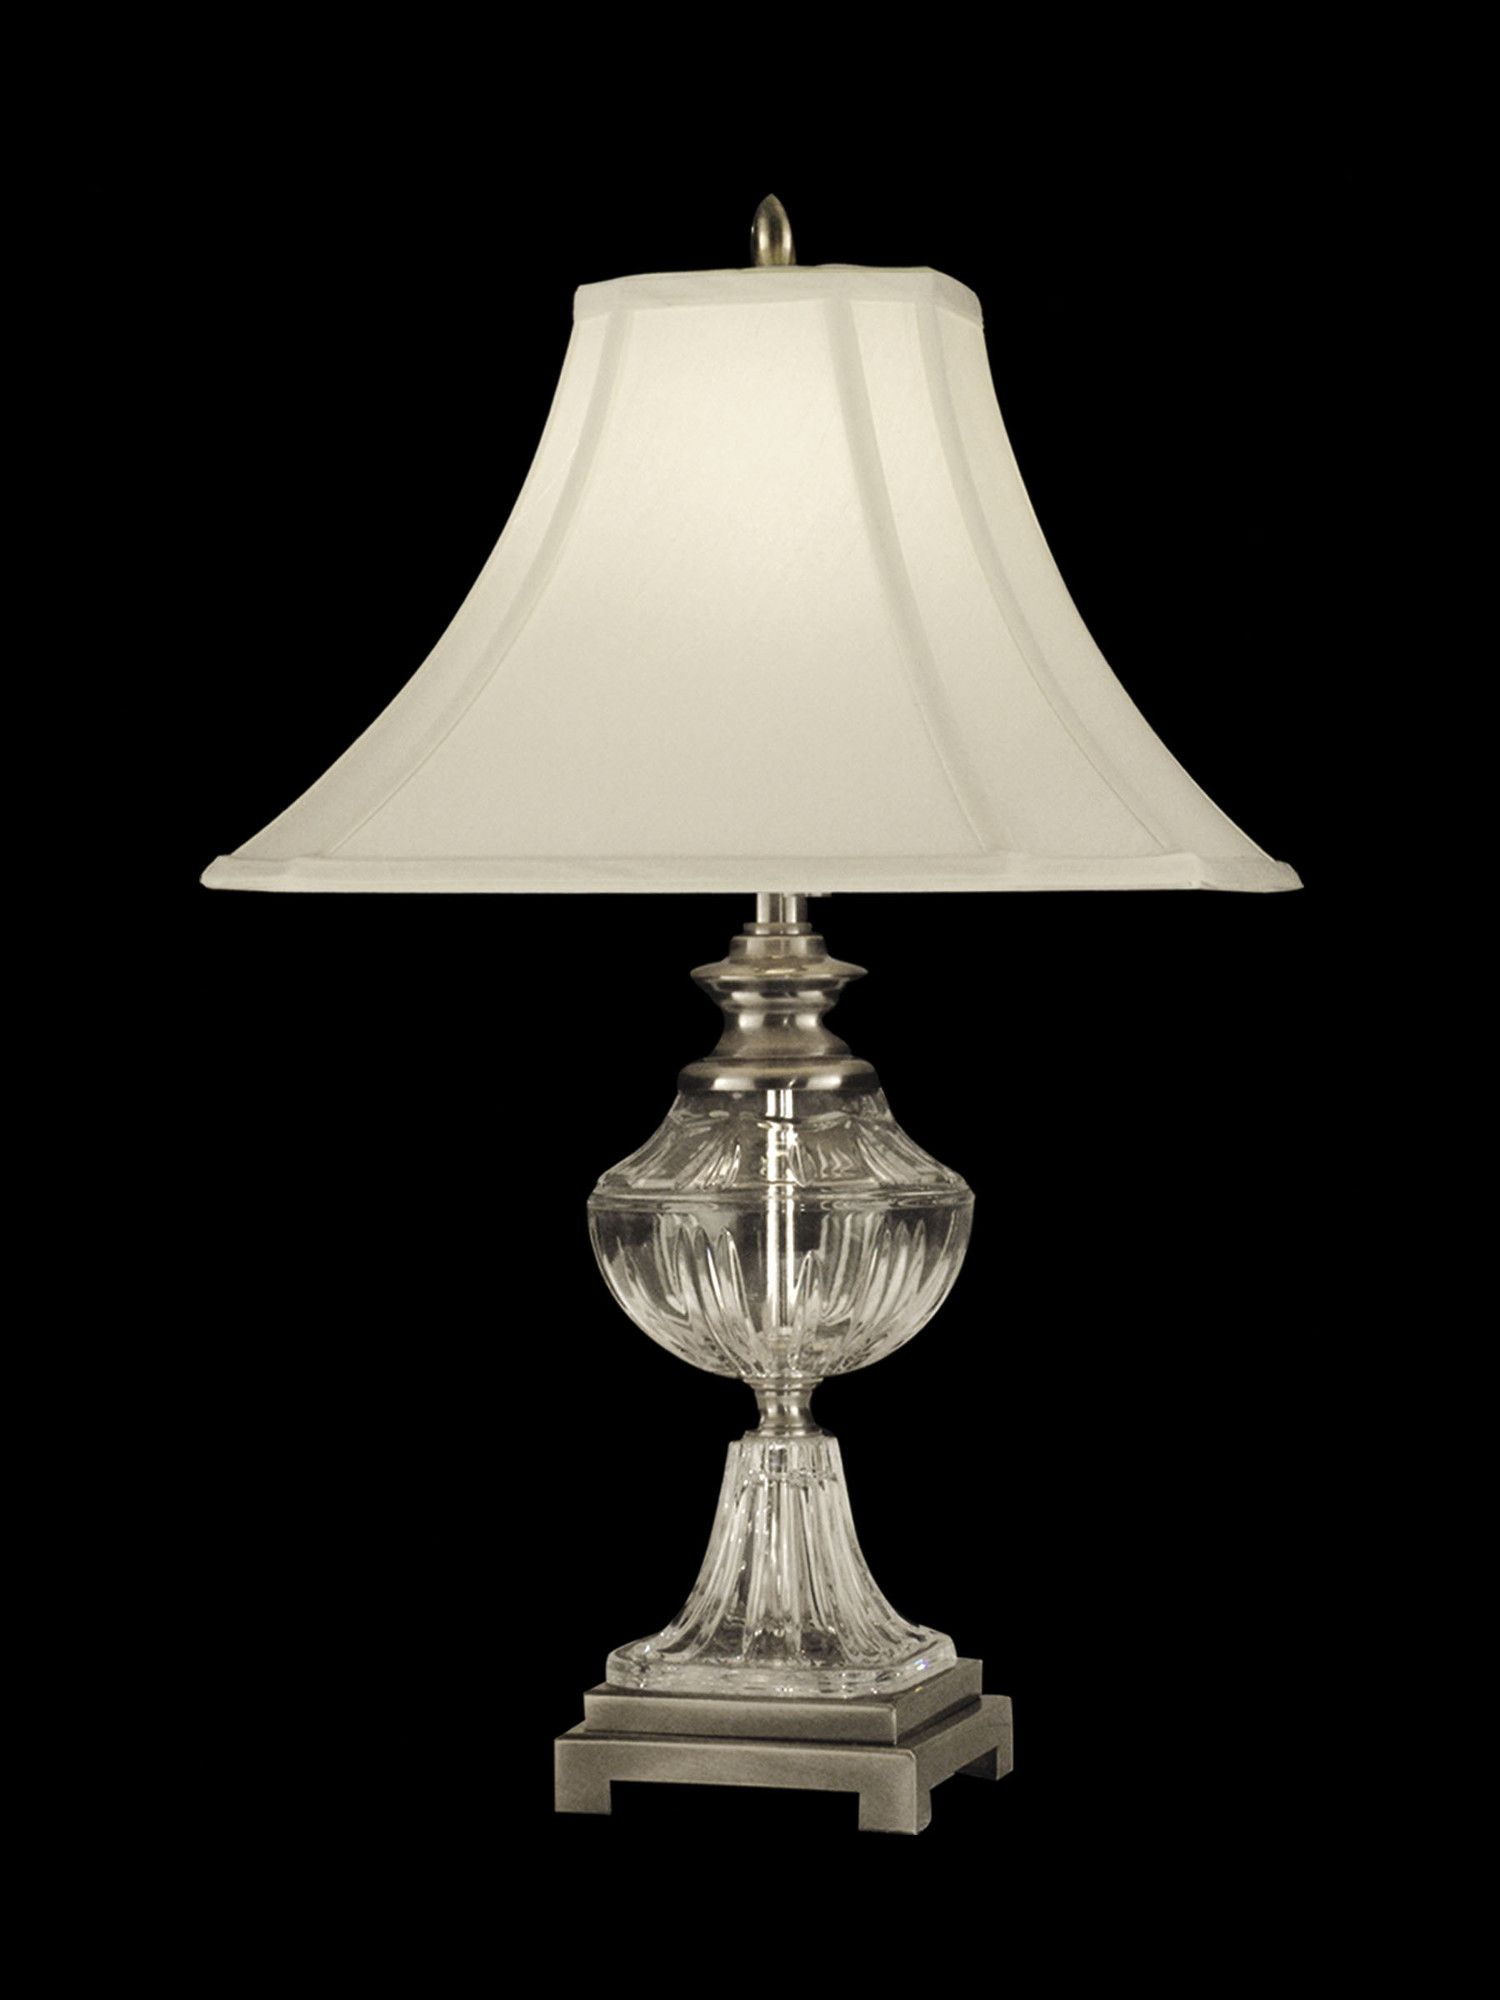 escudero wayfair lamp studio brayden foyers foyer pin reviews and table lamps pinterest